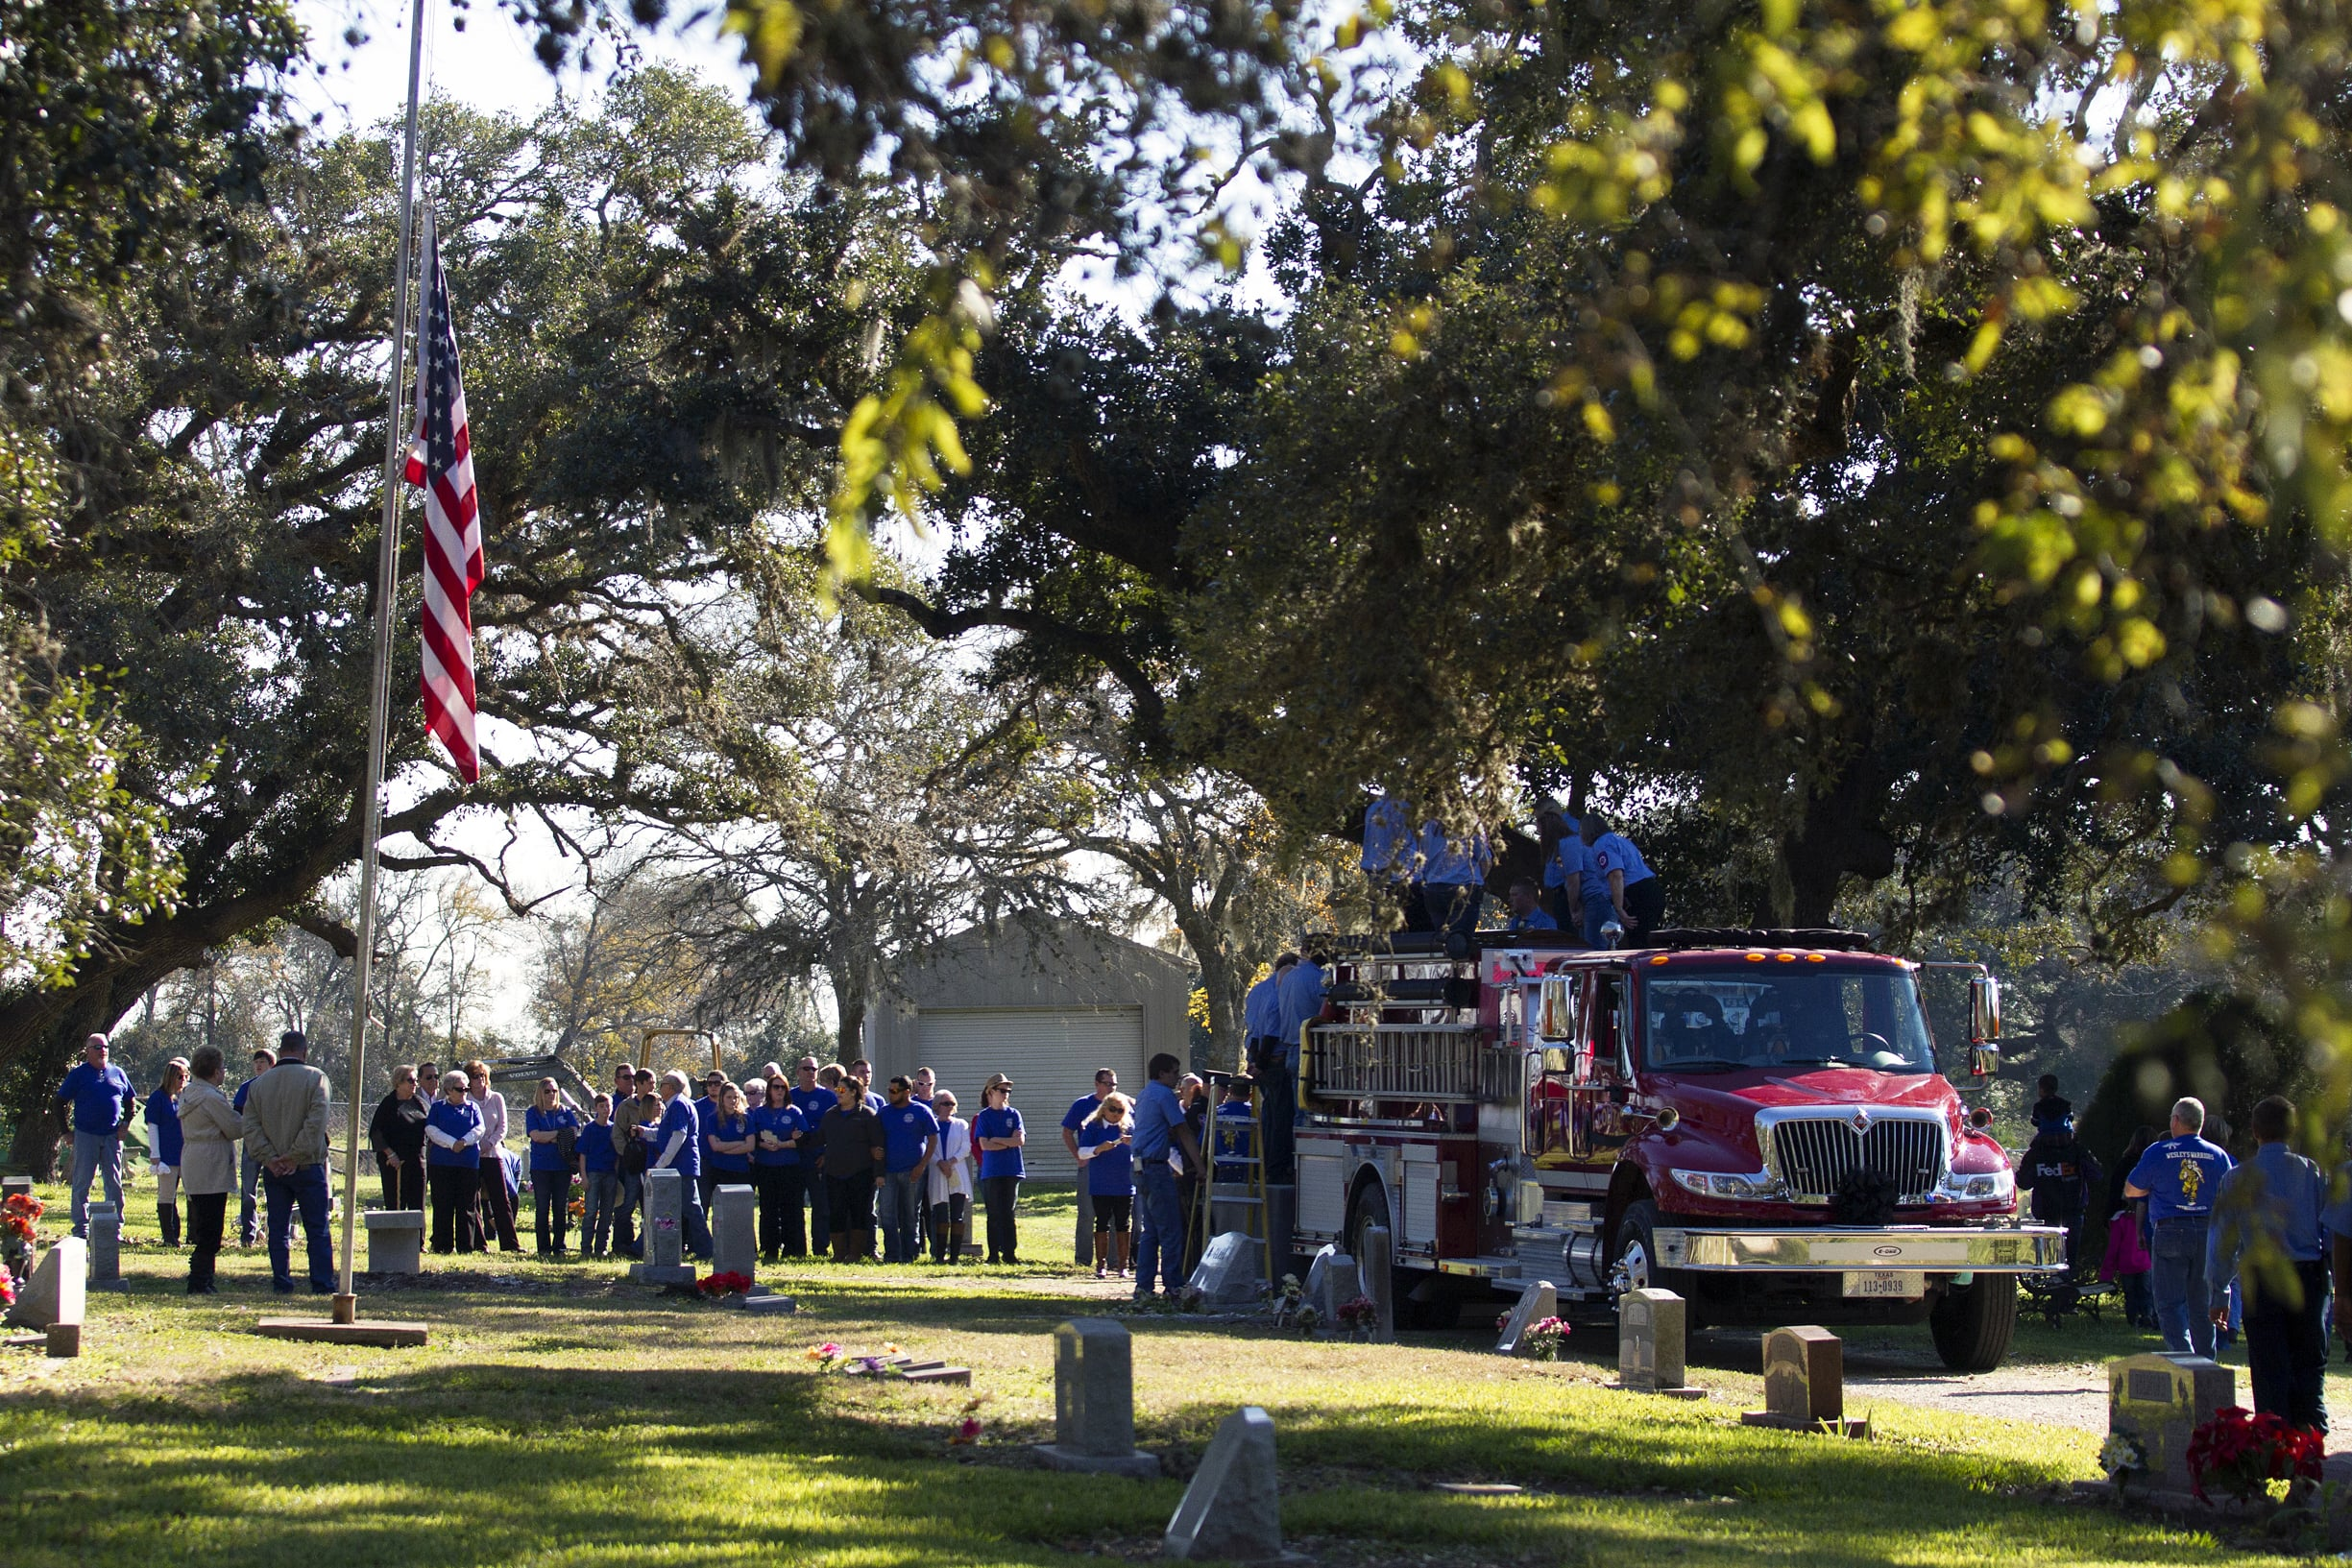 Henry's casket is unloaded from a firetruck at Red Bluff Cemetery in Lolita, TX.